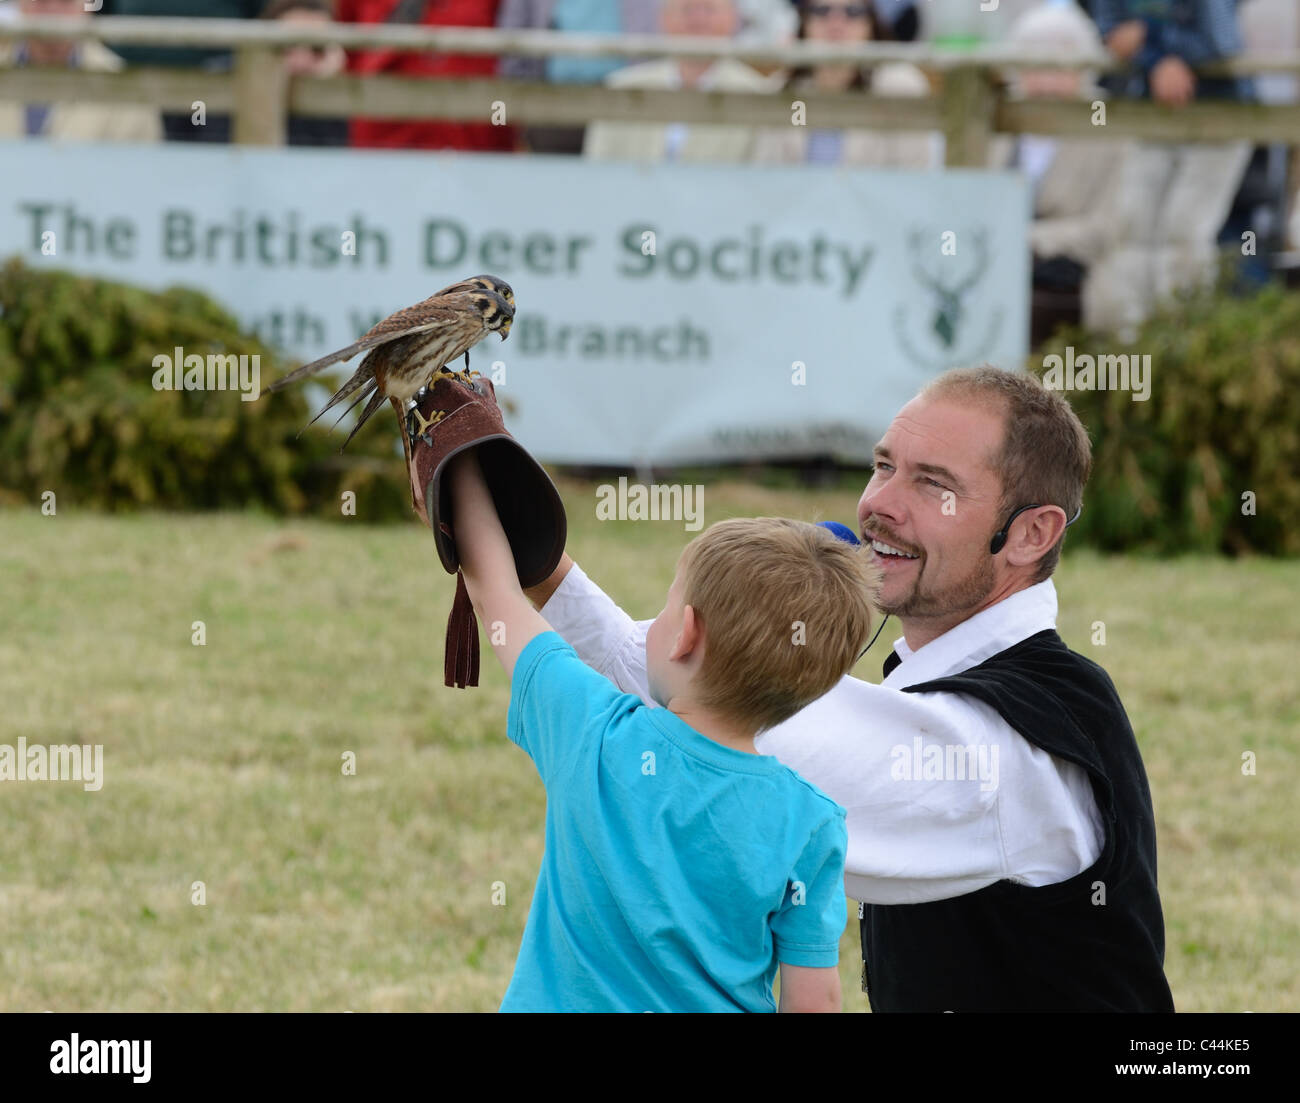 Young boys first experience of falconry with 2 American Kestrels - Stock Image